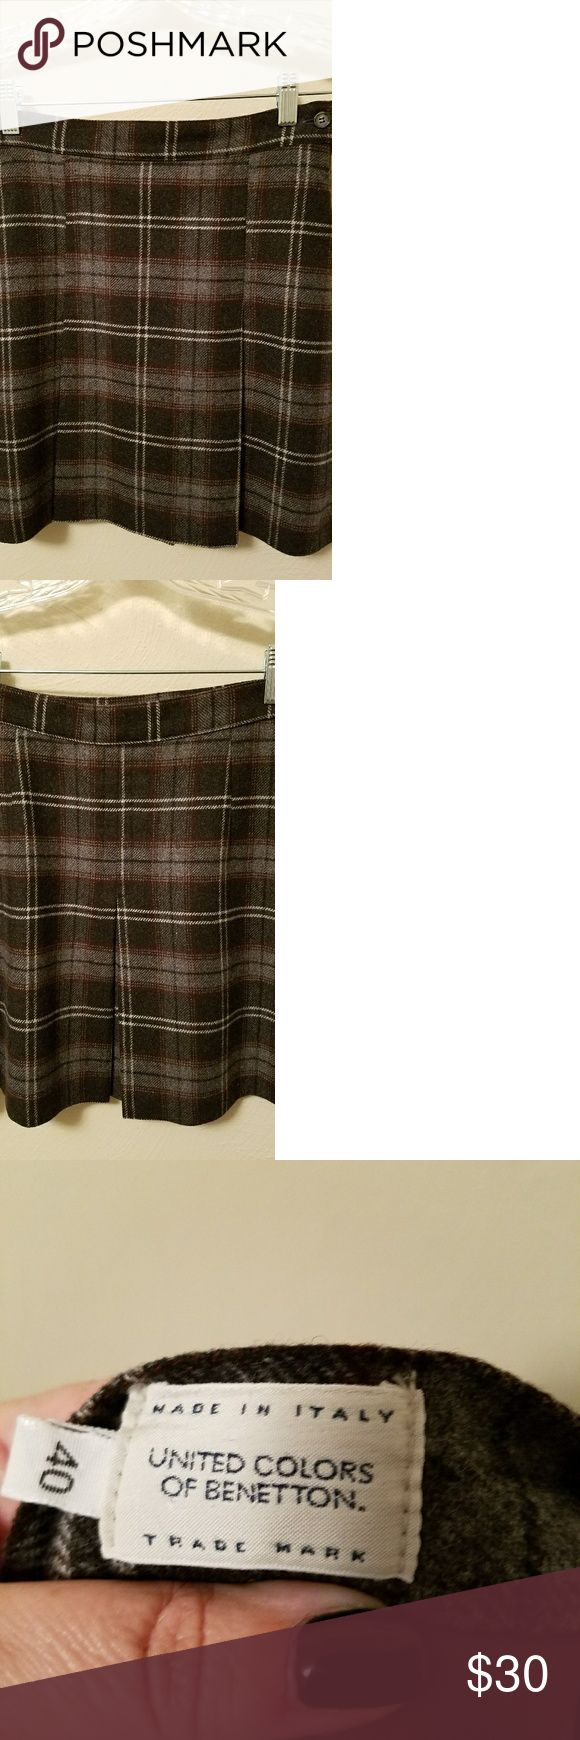 United Colors of Benetton Wool Blend Mini Skirt United Colors of Benetton wool blend mini skirt, European size 40, US size 8. Fully lined, side zipper, two front pleats, one back pleat. Adorable, slimming line. Dark grey, light grey, silver, burgundy plaid. Reads grey. Excellent used condition - never worn.   No trades at this time. Happy poshing! United Colors Of Benetton Skirts Mini